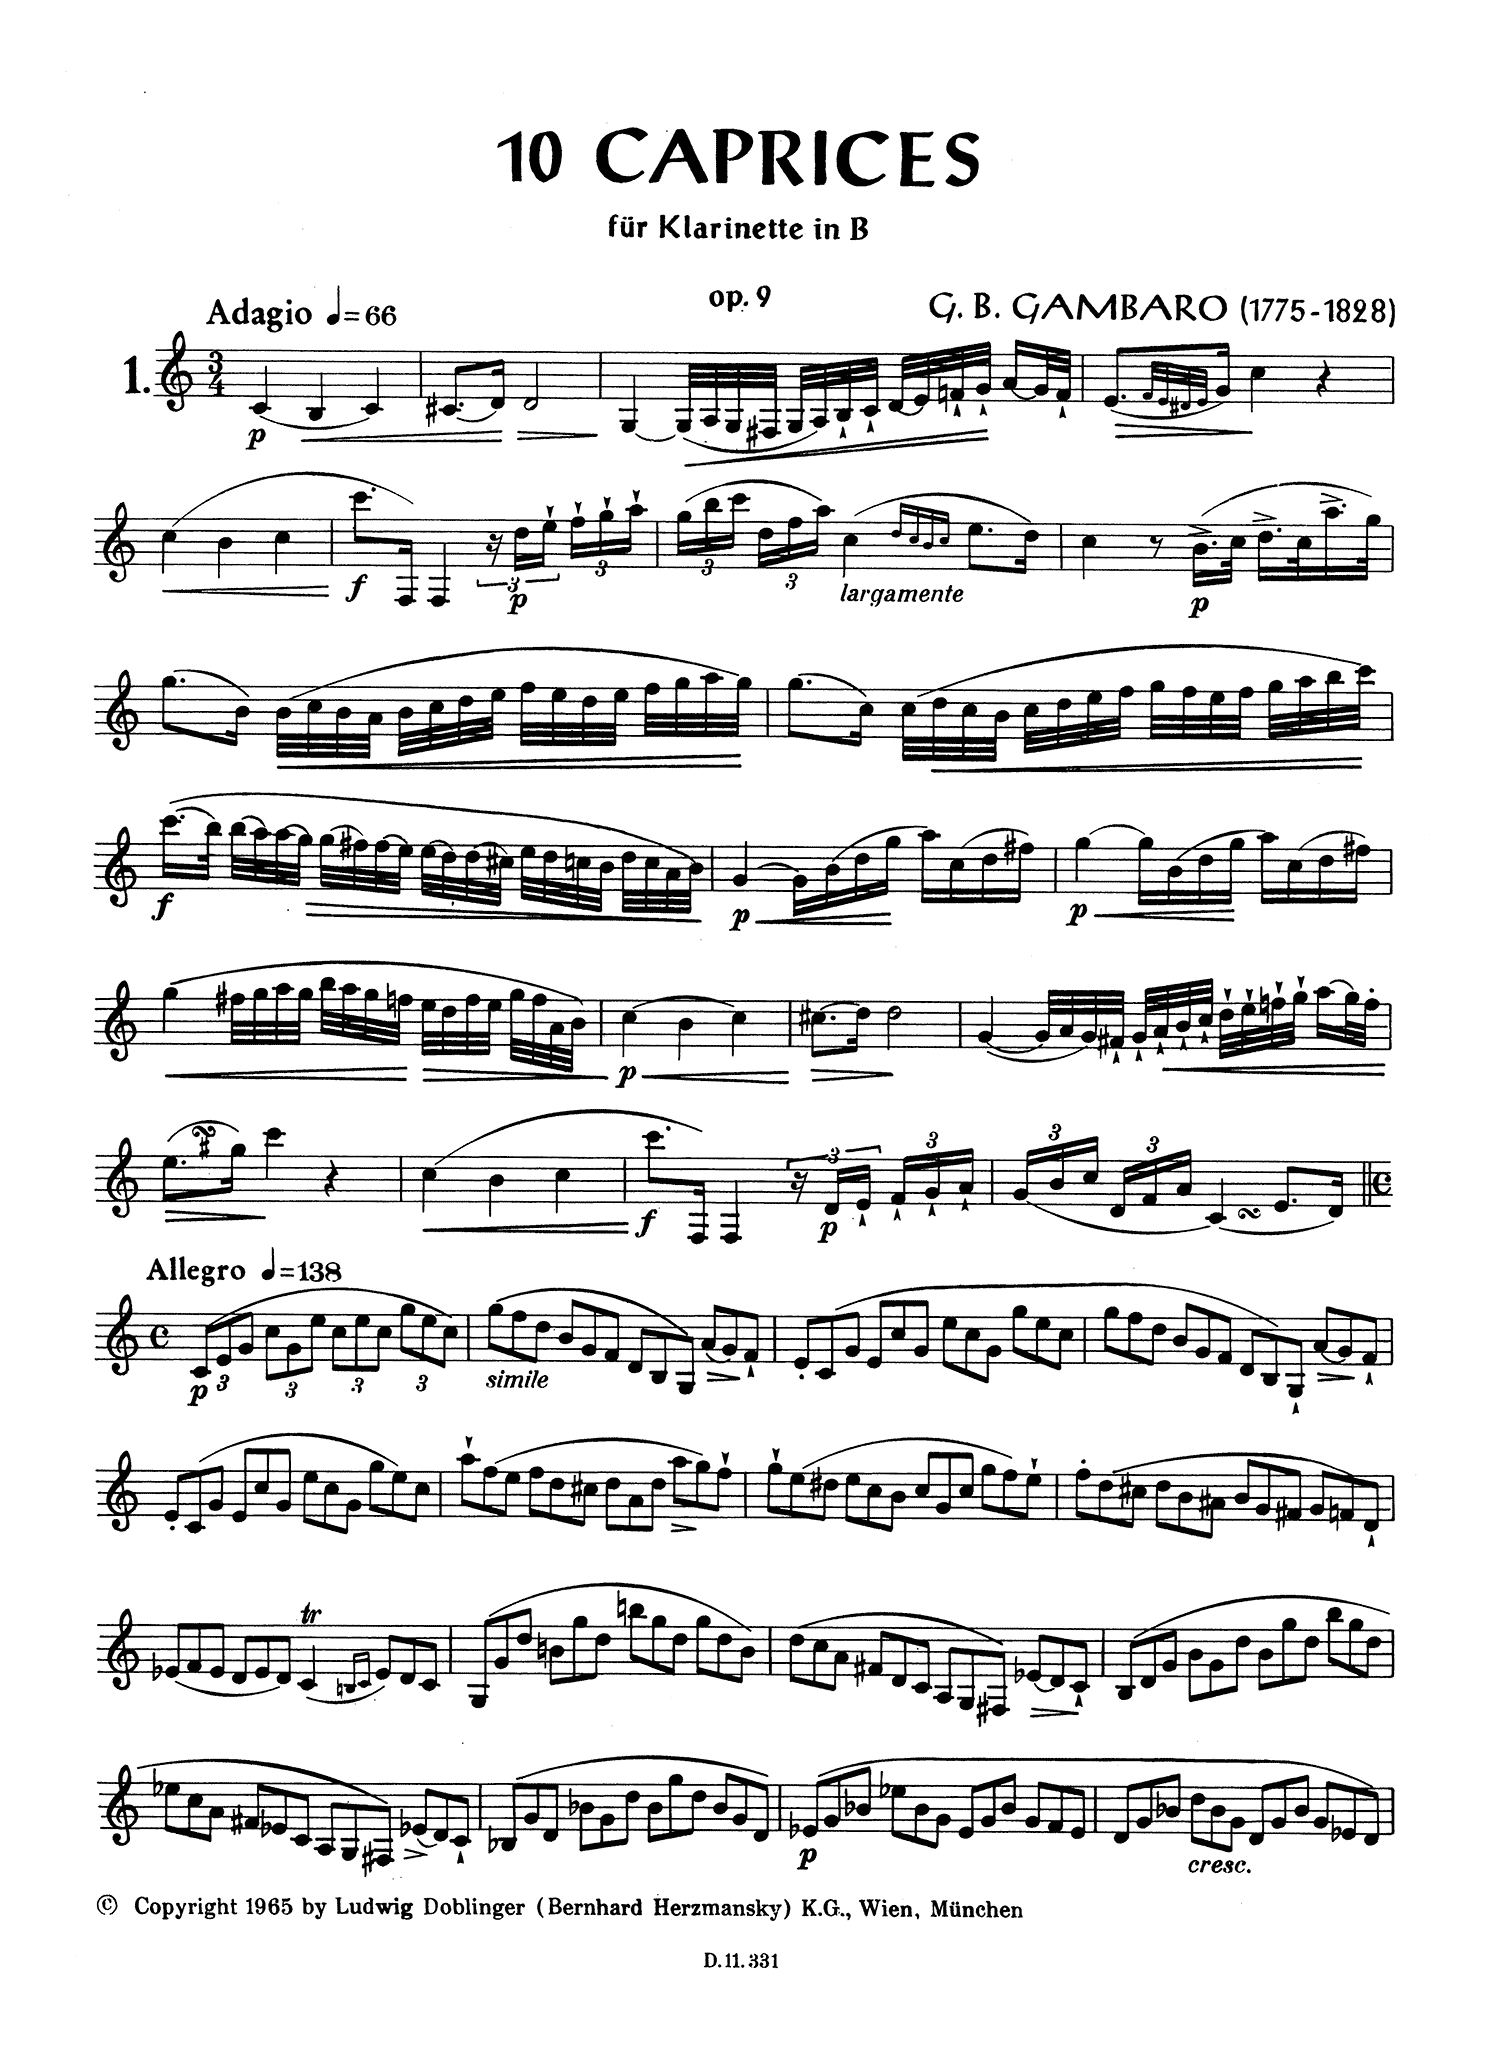 Gambaro 10 Caprices for Clarinet, Op. 9 Page 2